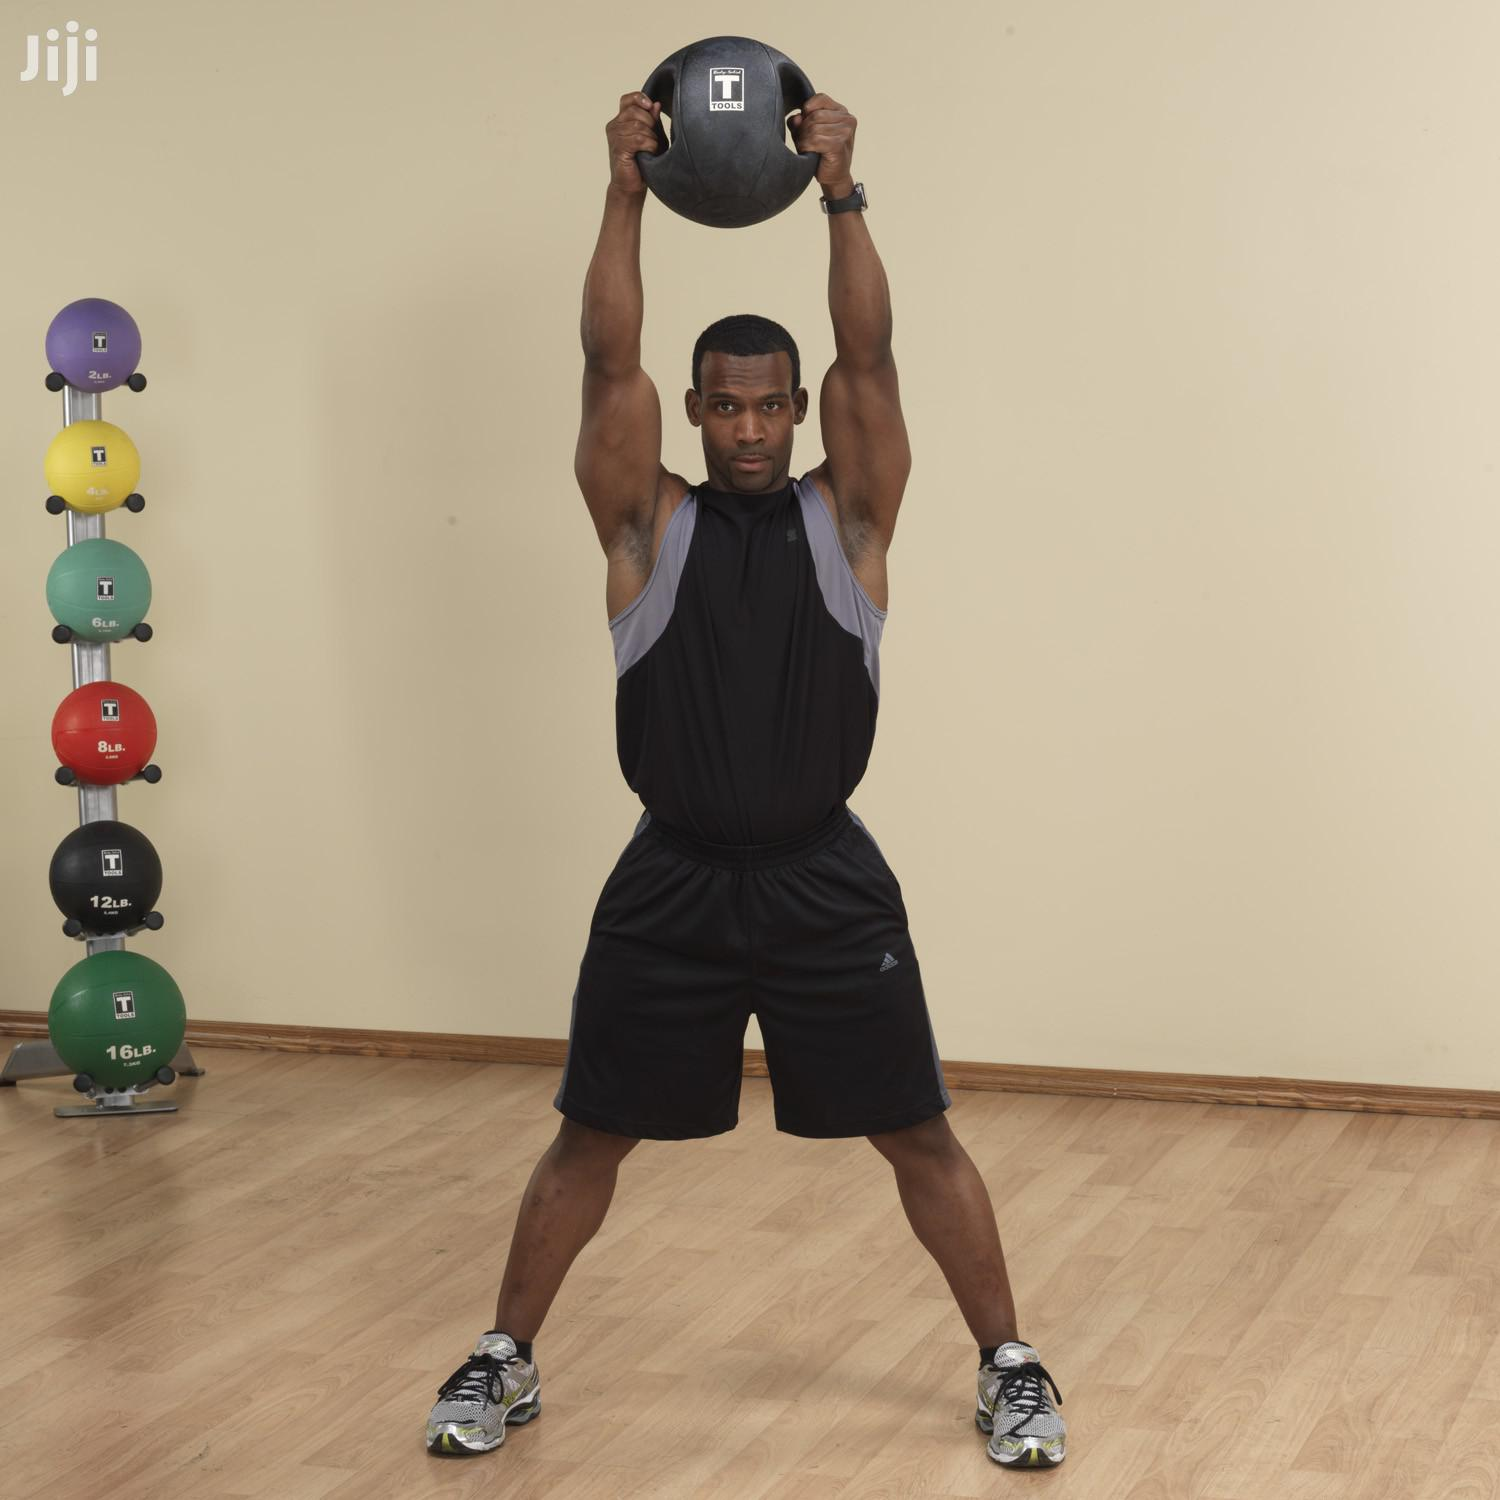 Dual Grip Medicine Ball 2.7kg | Sports Equipment for sale in Adenta Municipal, Greater Accra, Ghana